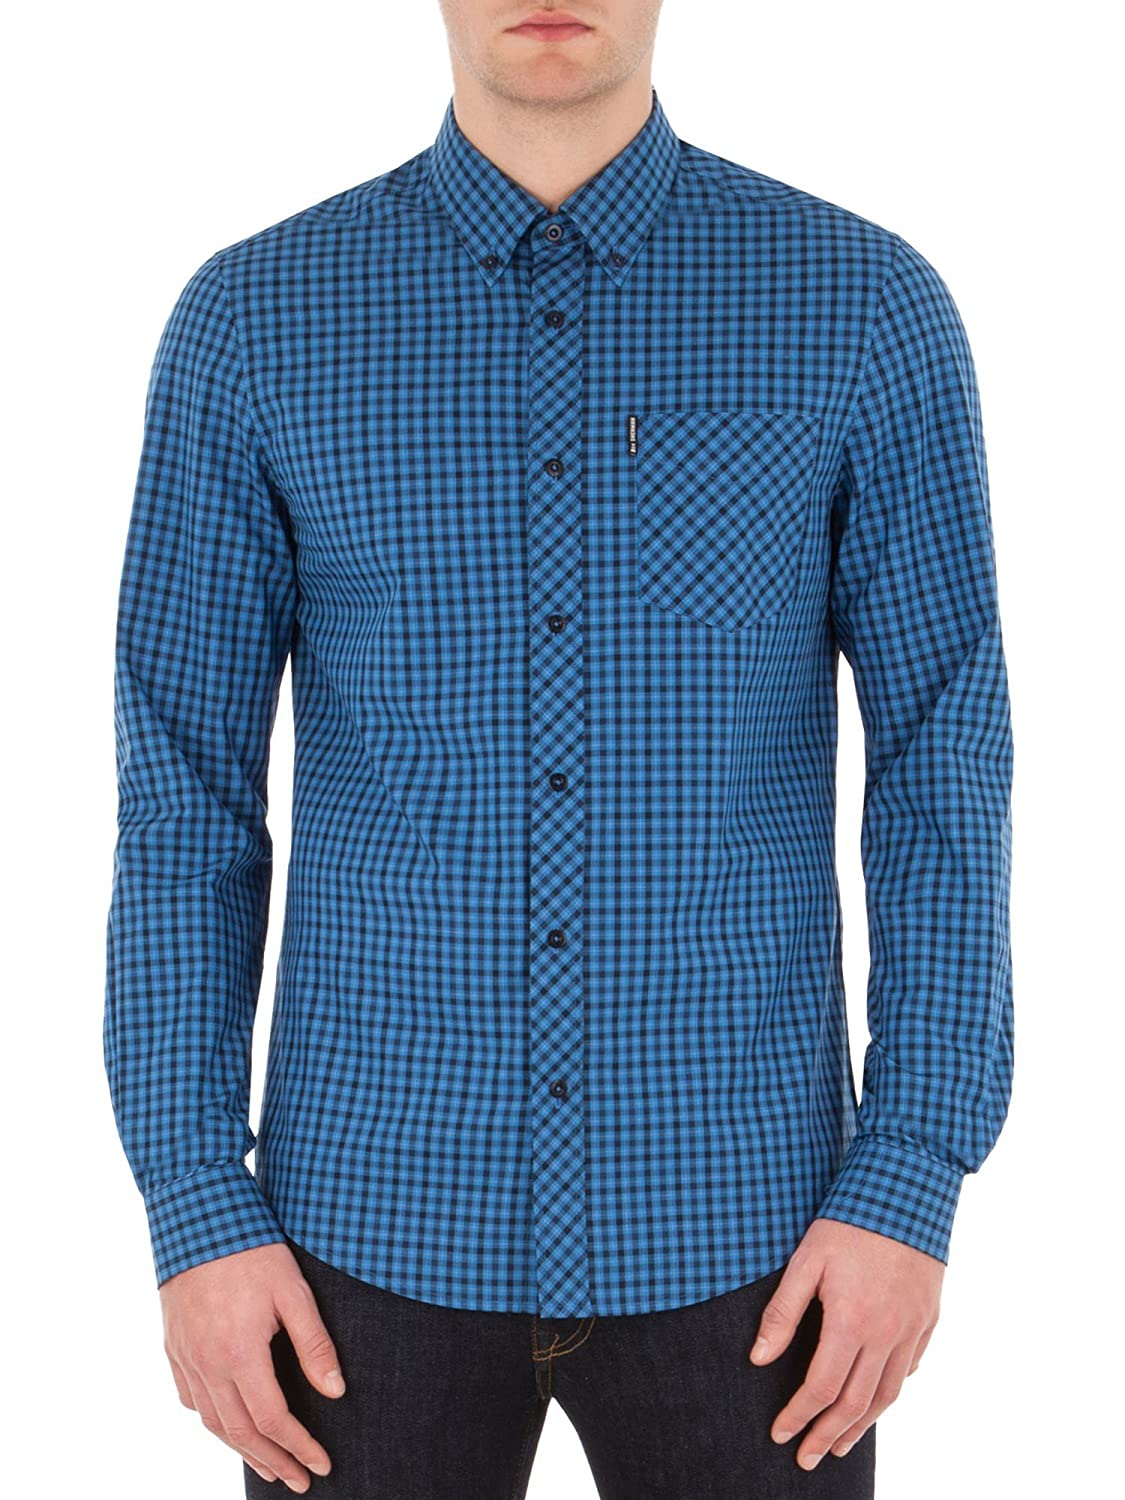 House Check Shirt - MA13641